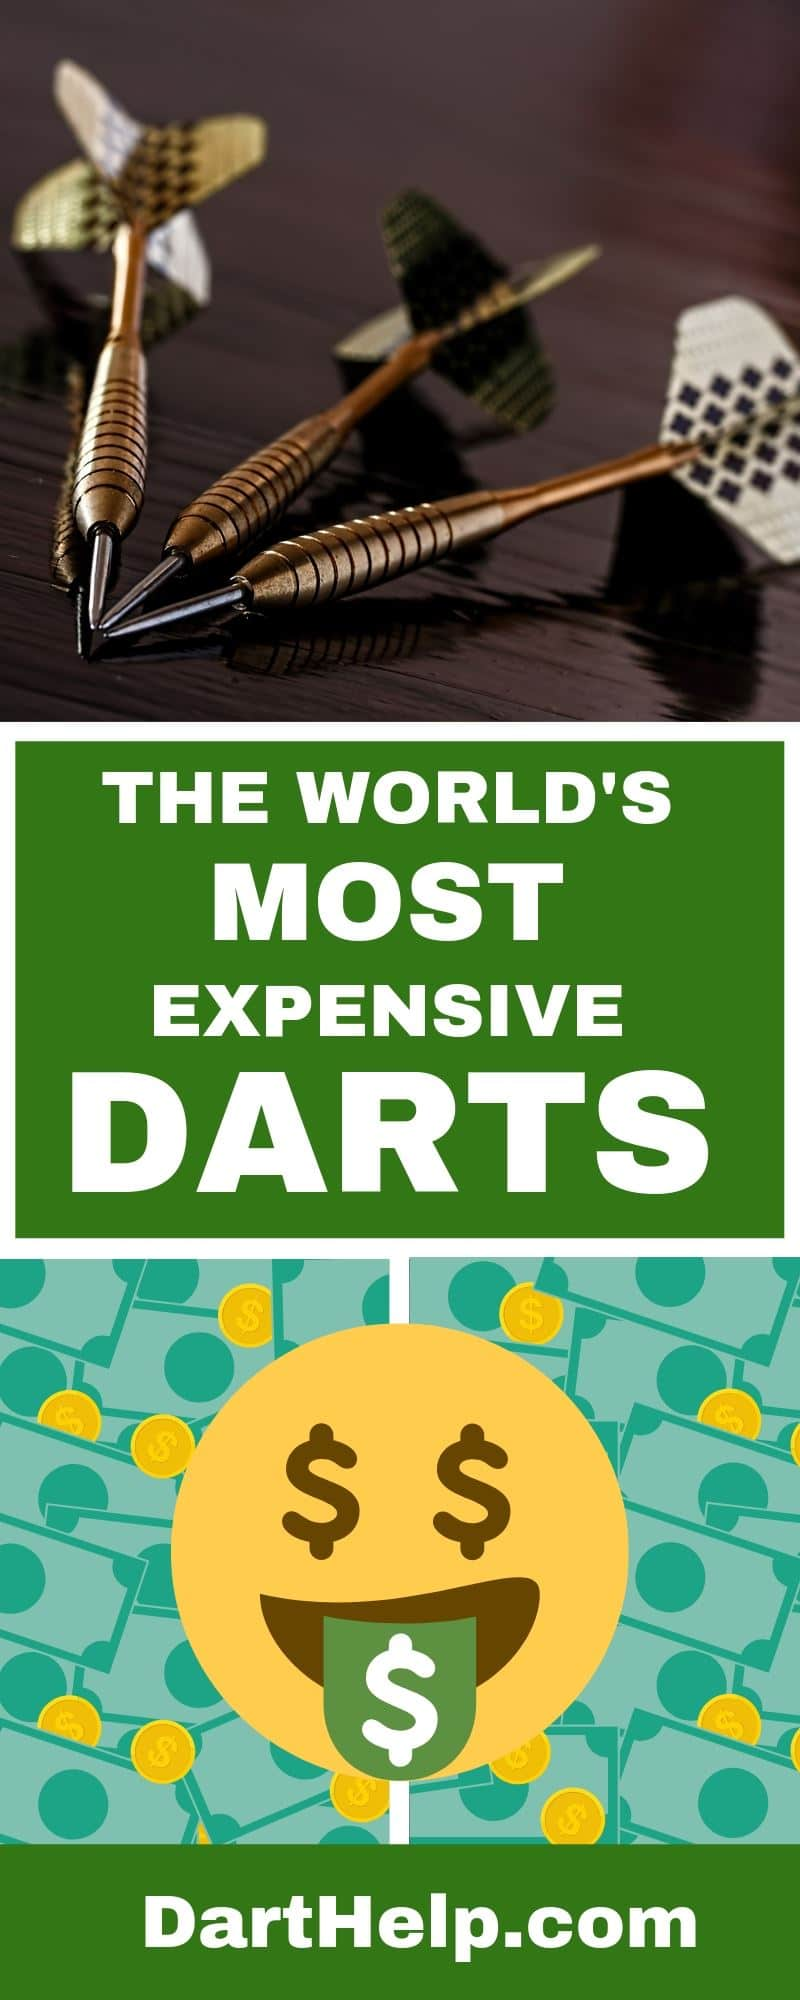 Darts Made Out Of Gold